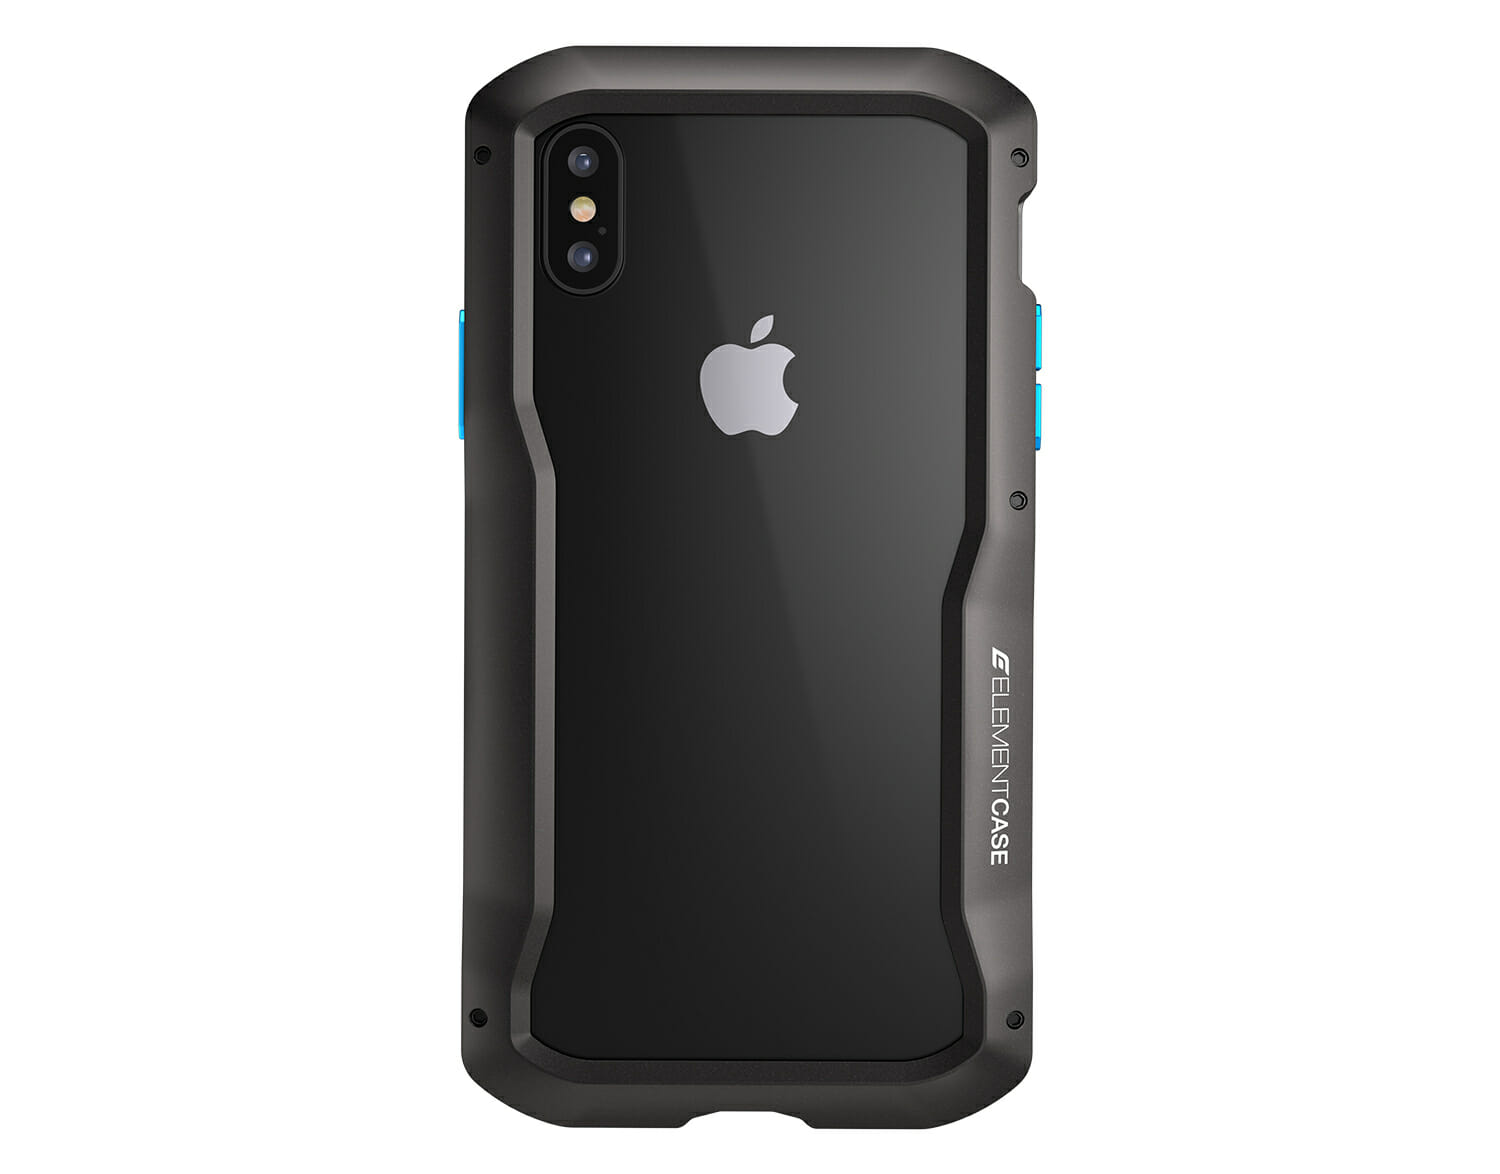 vapor s iphone xs x, xs max, xr case element casevapor siphone xs x, xs max, xr case